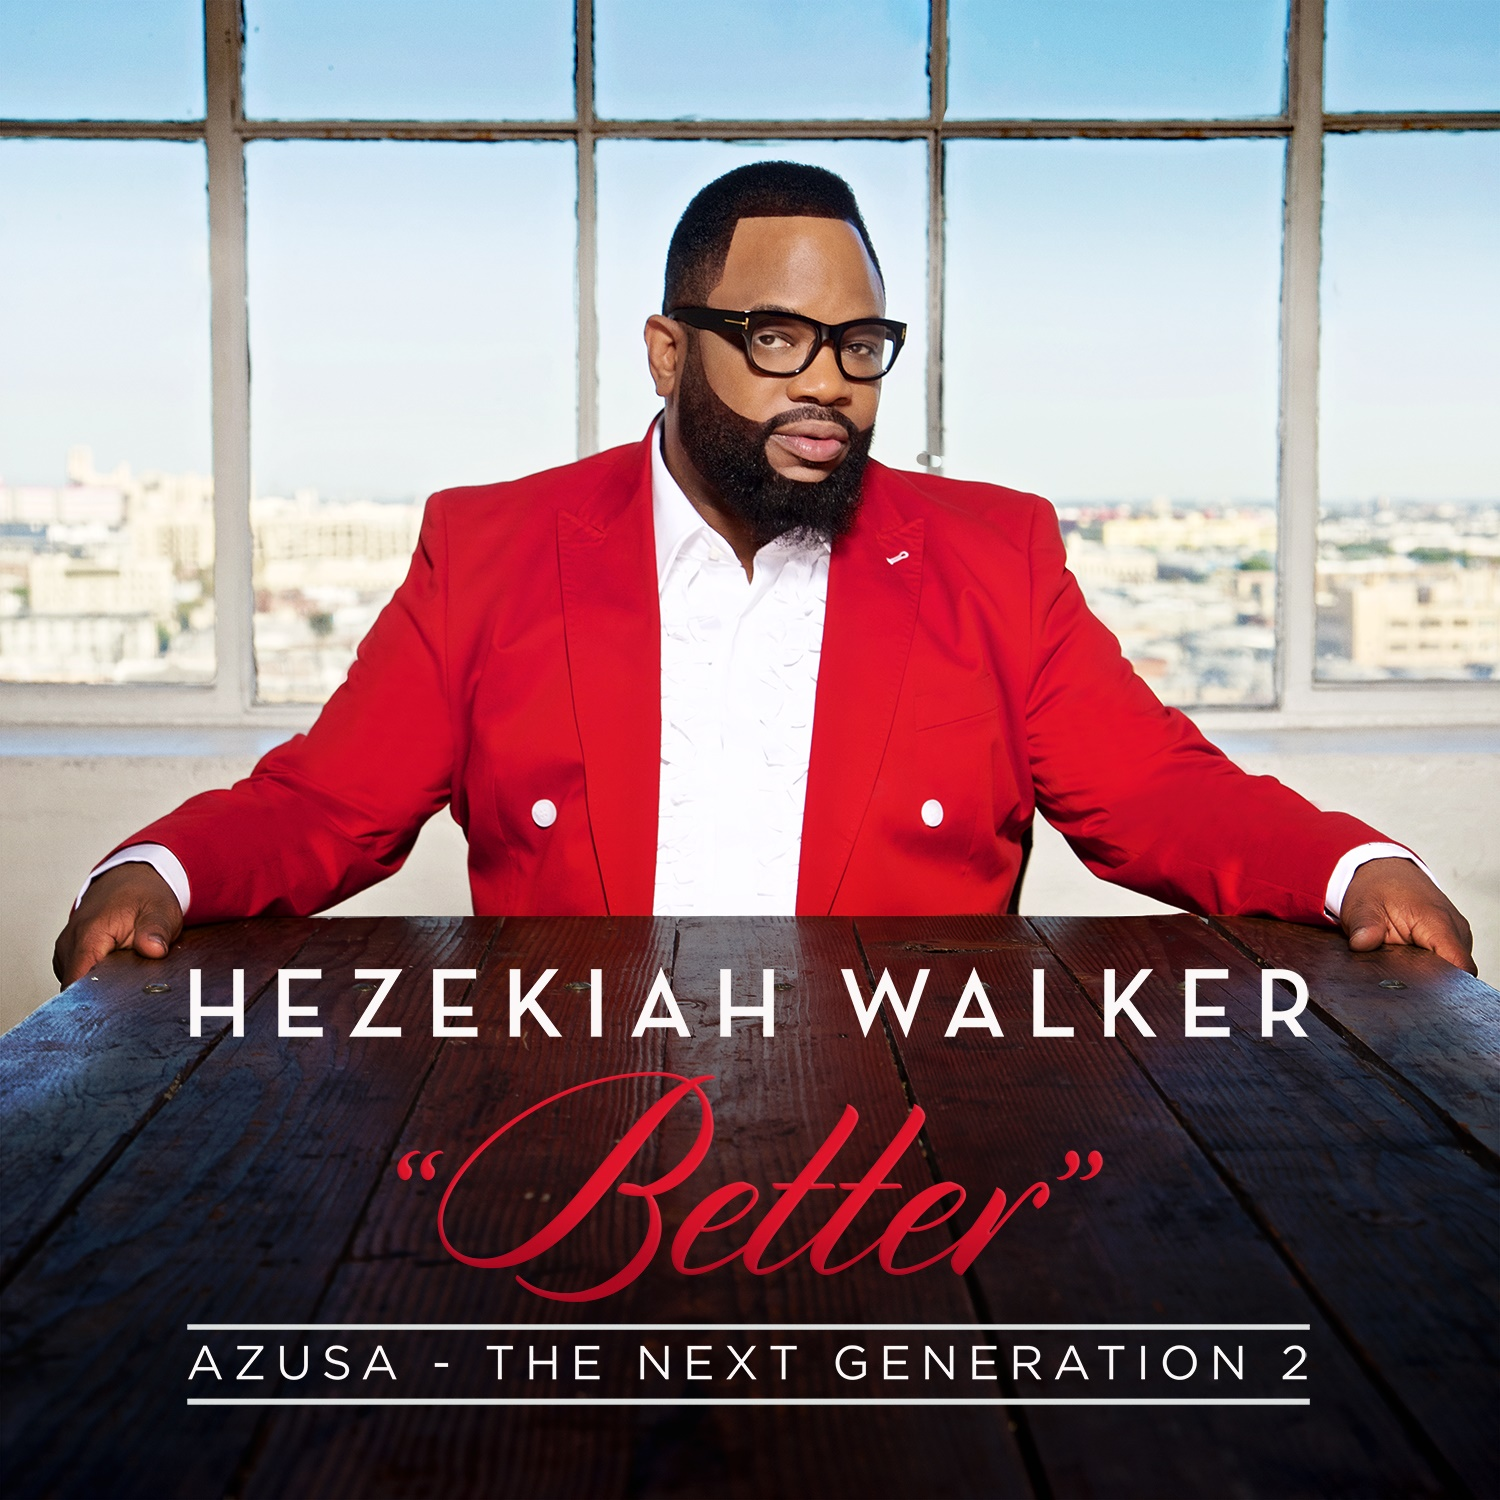 Hezekiah-Walker-Azusa-The-Next-Generation-2-Better-Album-Cover